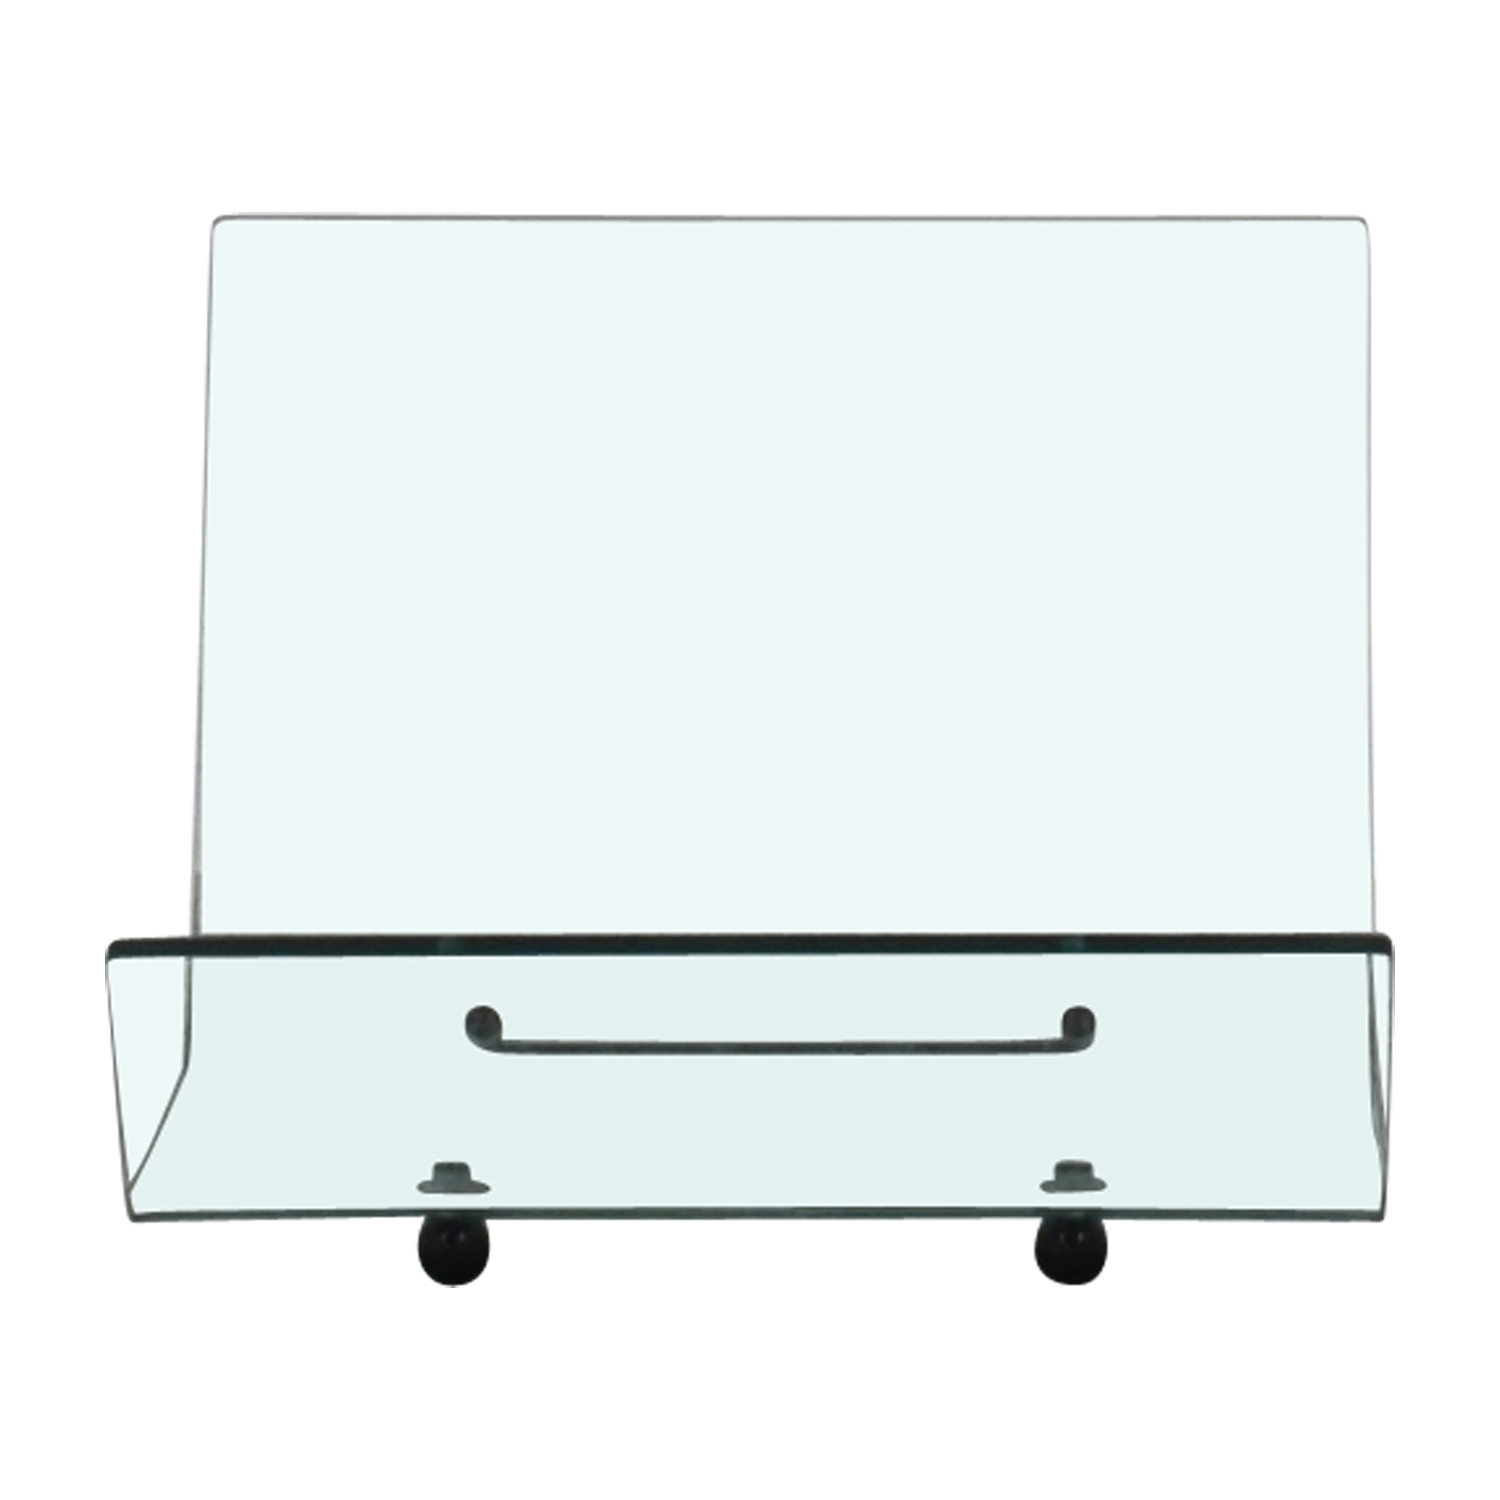 buy Fiam Ghost Magazine Rack Fiam Decorative Accents